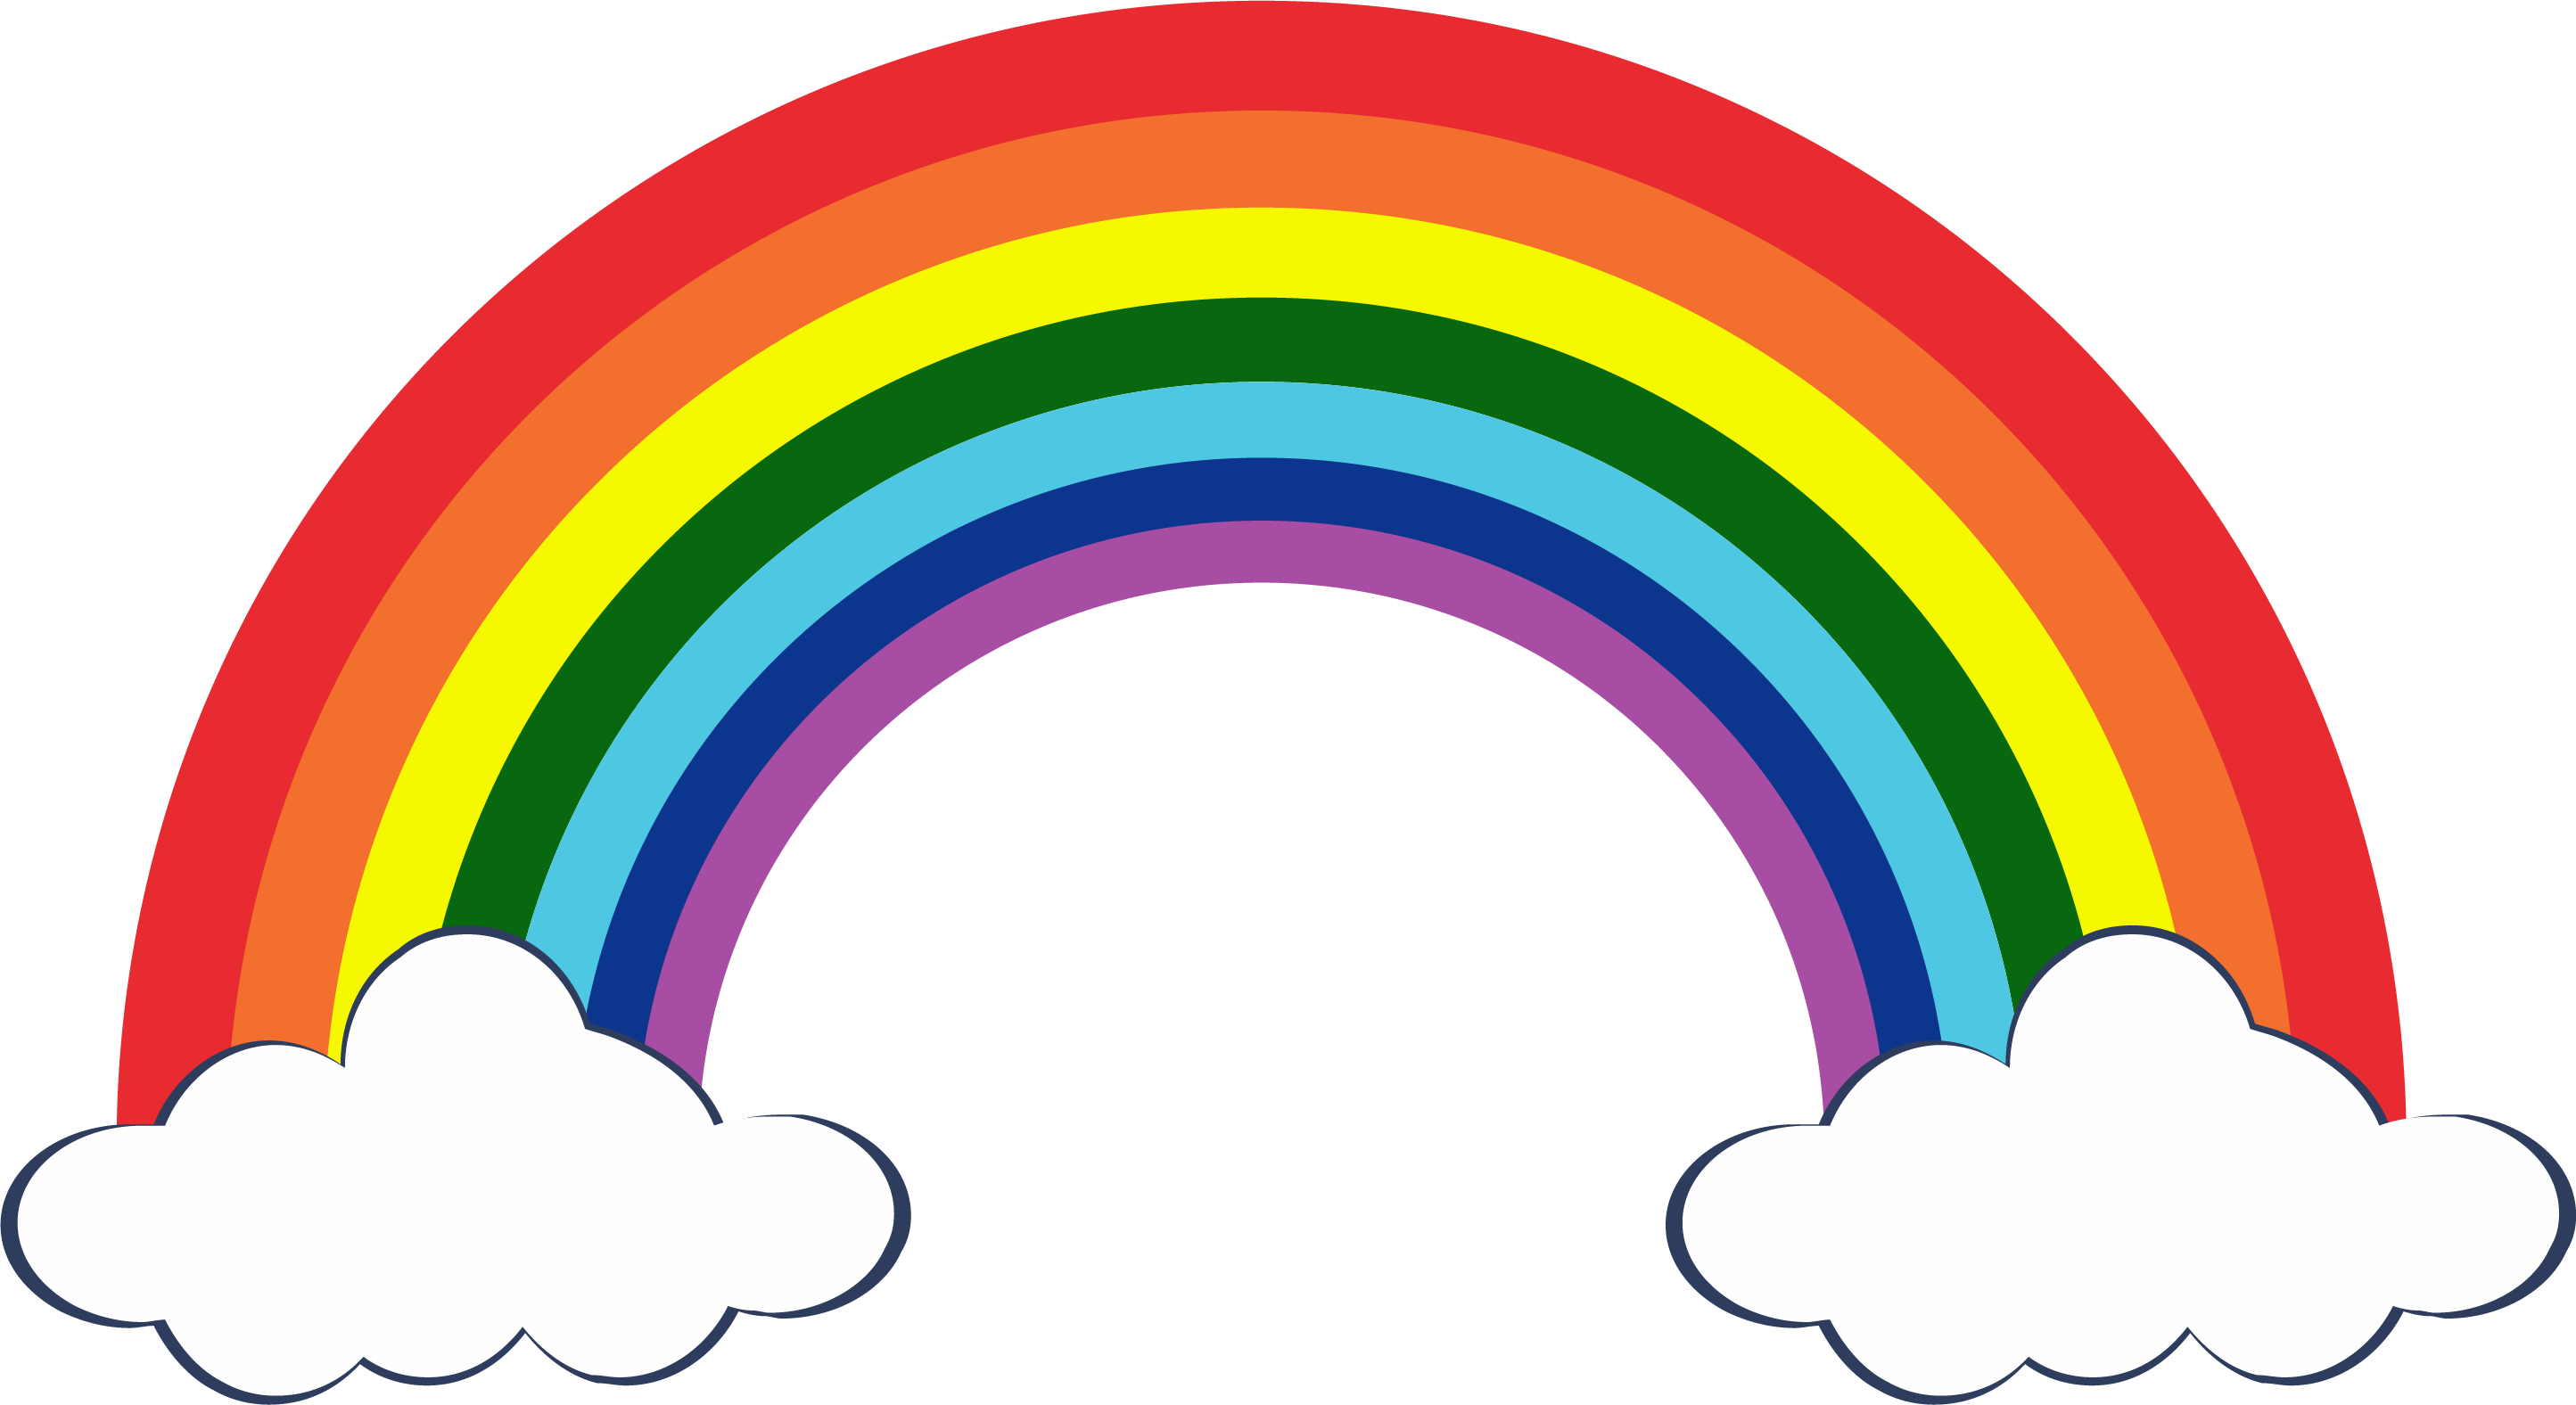 Rainbow clipart. Clip art photo niceclipart